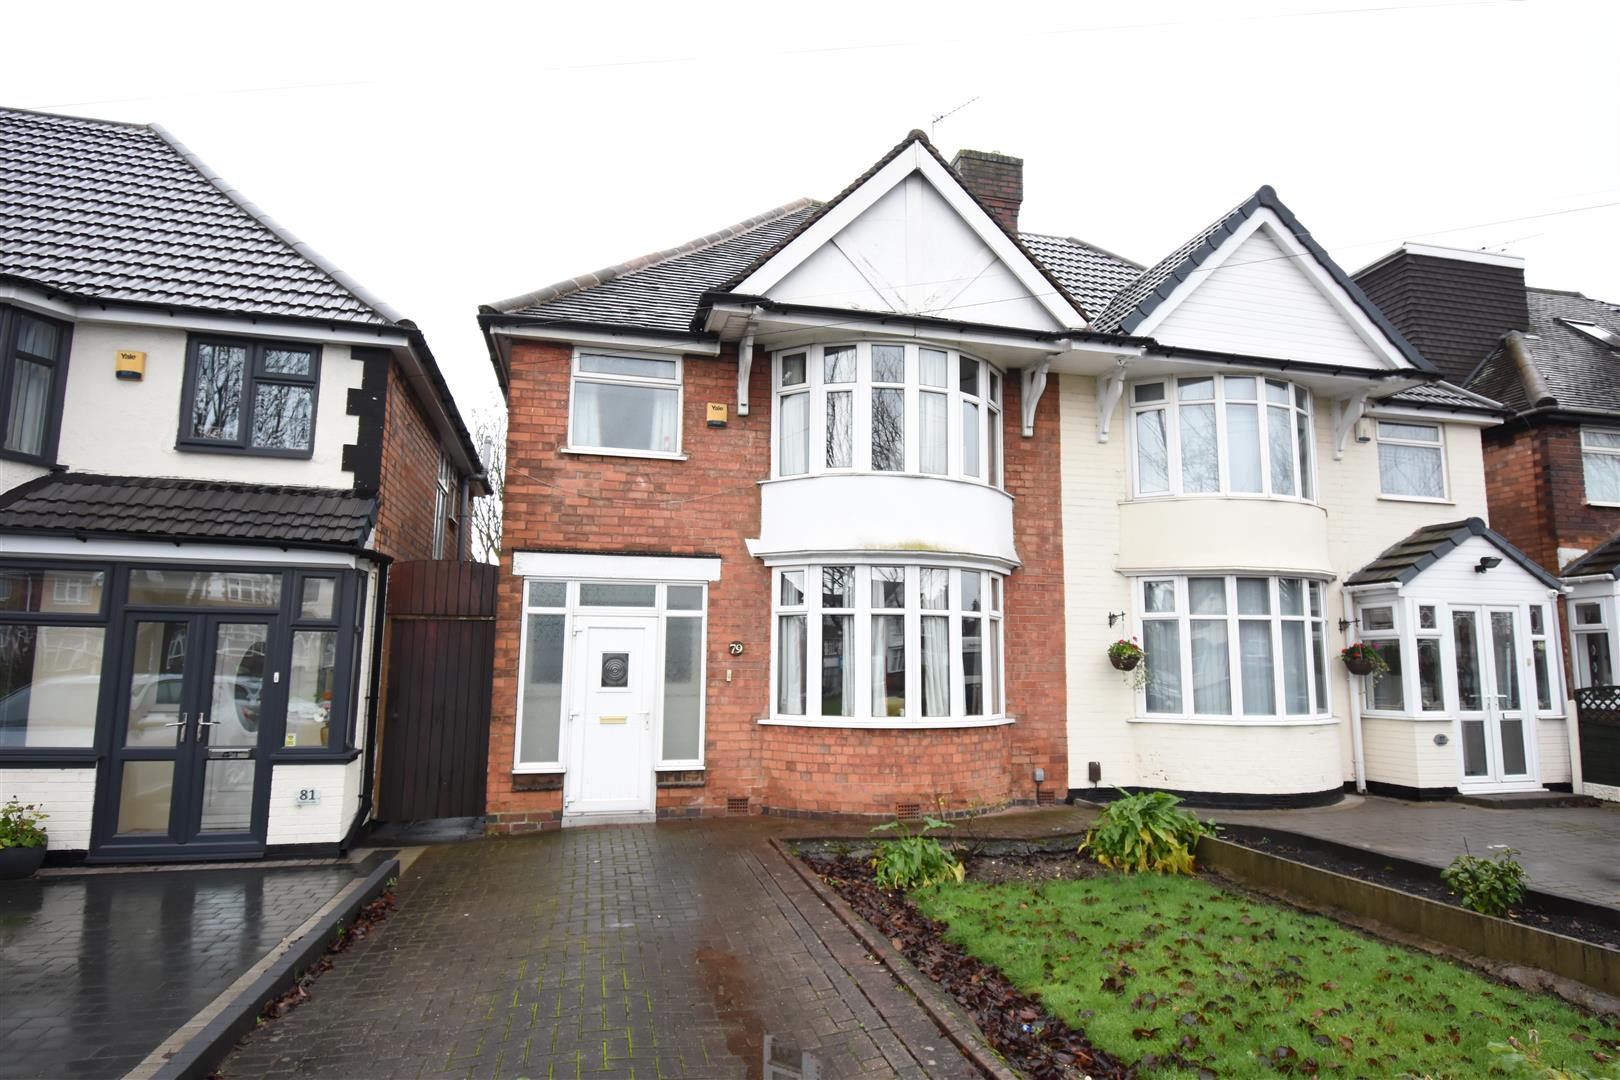 3 bed house for sale in Stechford Lane, Ward End, Birmingham, B8